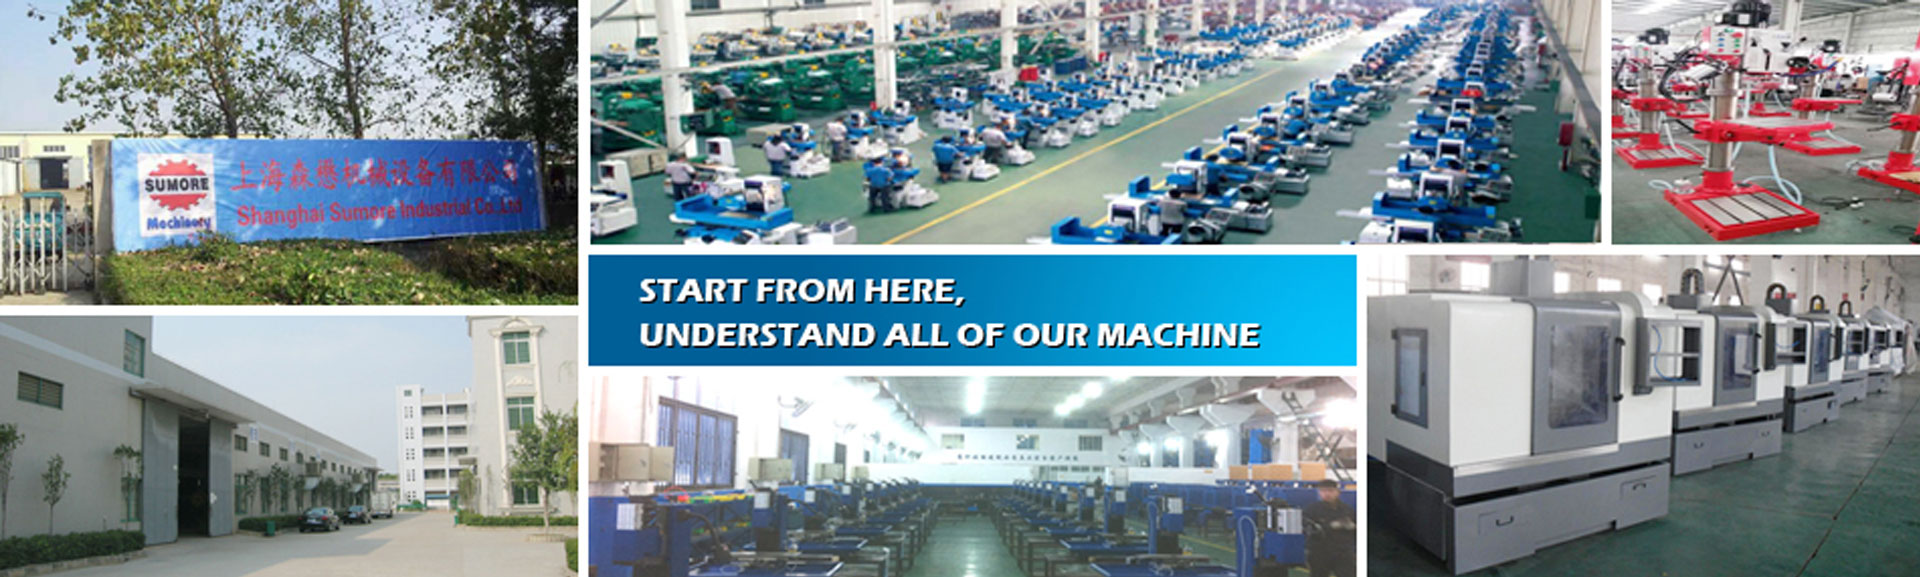 SHANGHAI Sumore INDUSTRIAL CO., LTD. Bnanner1